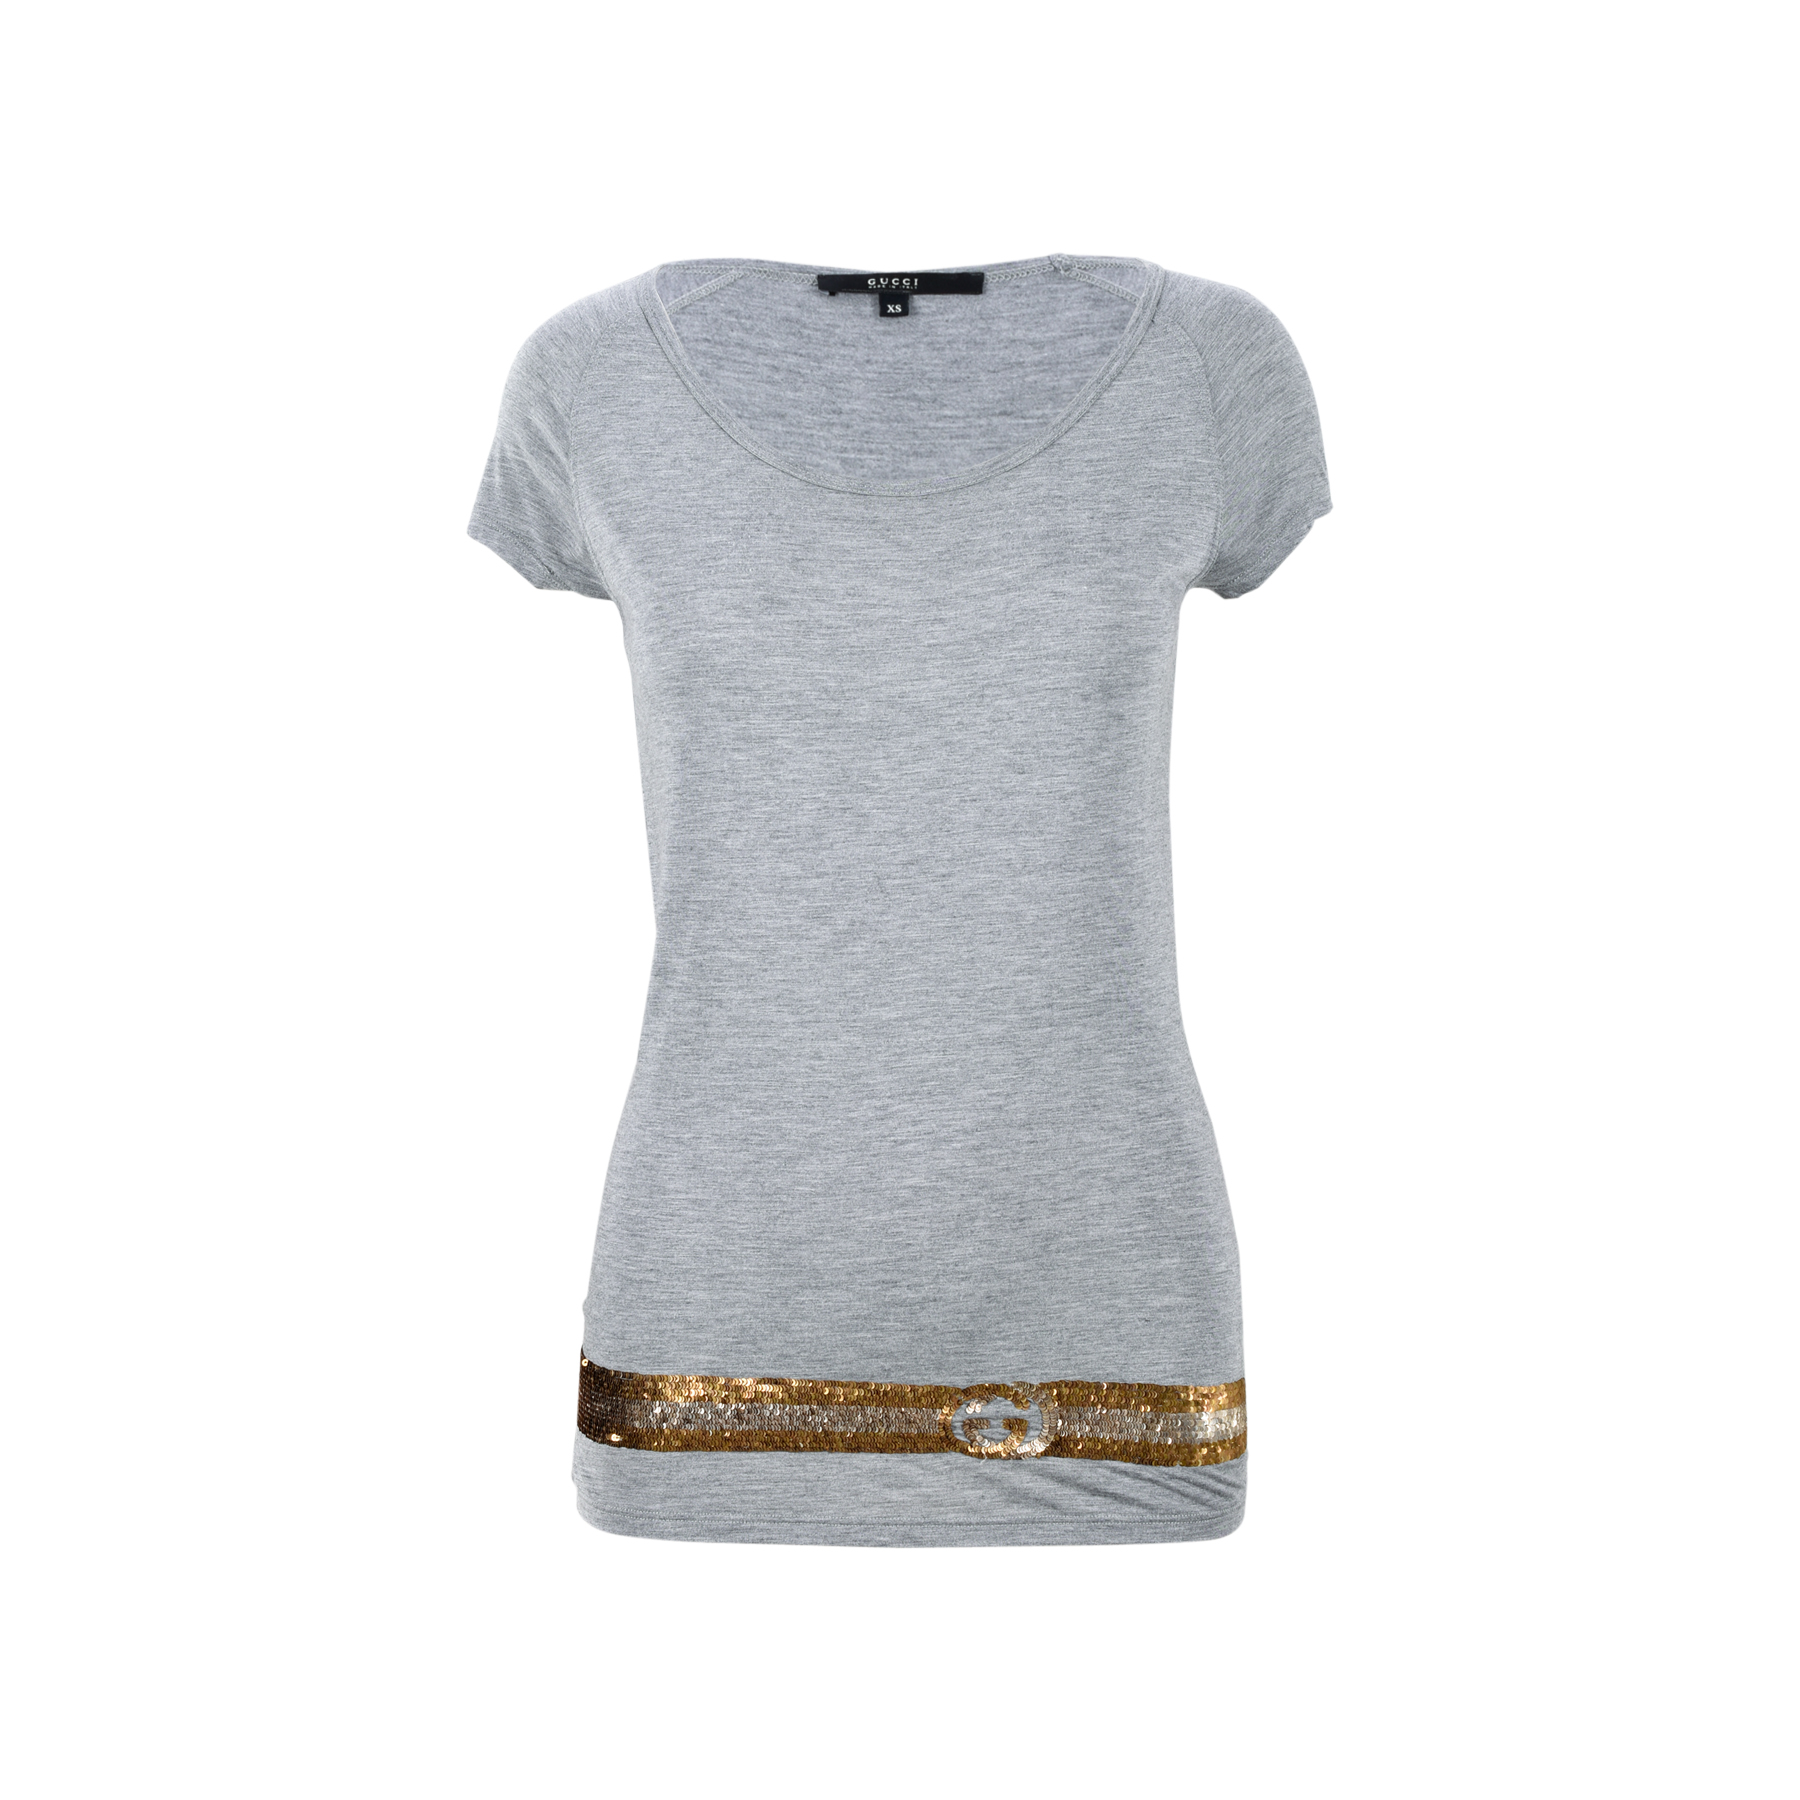 0f4f26e4cb9d Authentic Second Hand Gucci Sequin Embellished T-shirt (PSS-200-01391)